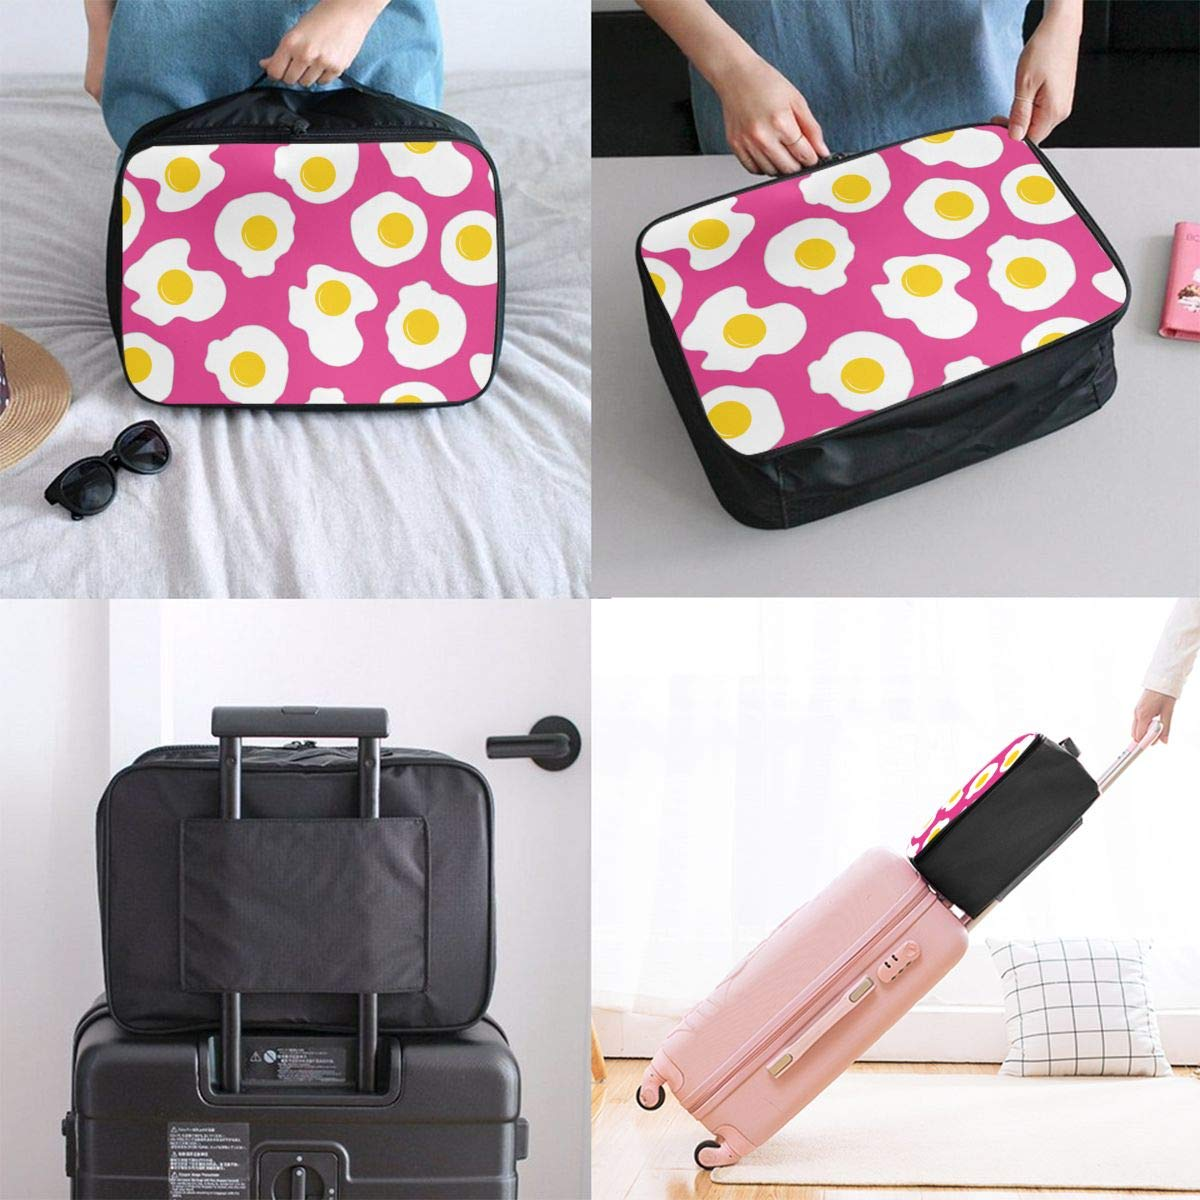 YueLJB Fried Egg Lightweight Large Capacity Portable Luggage Bag Travel Duffel Bag Storage Carry Luggage Duffle Tote Bag